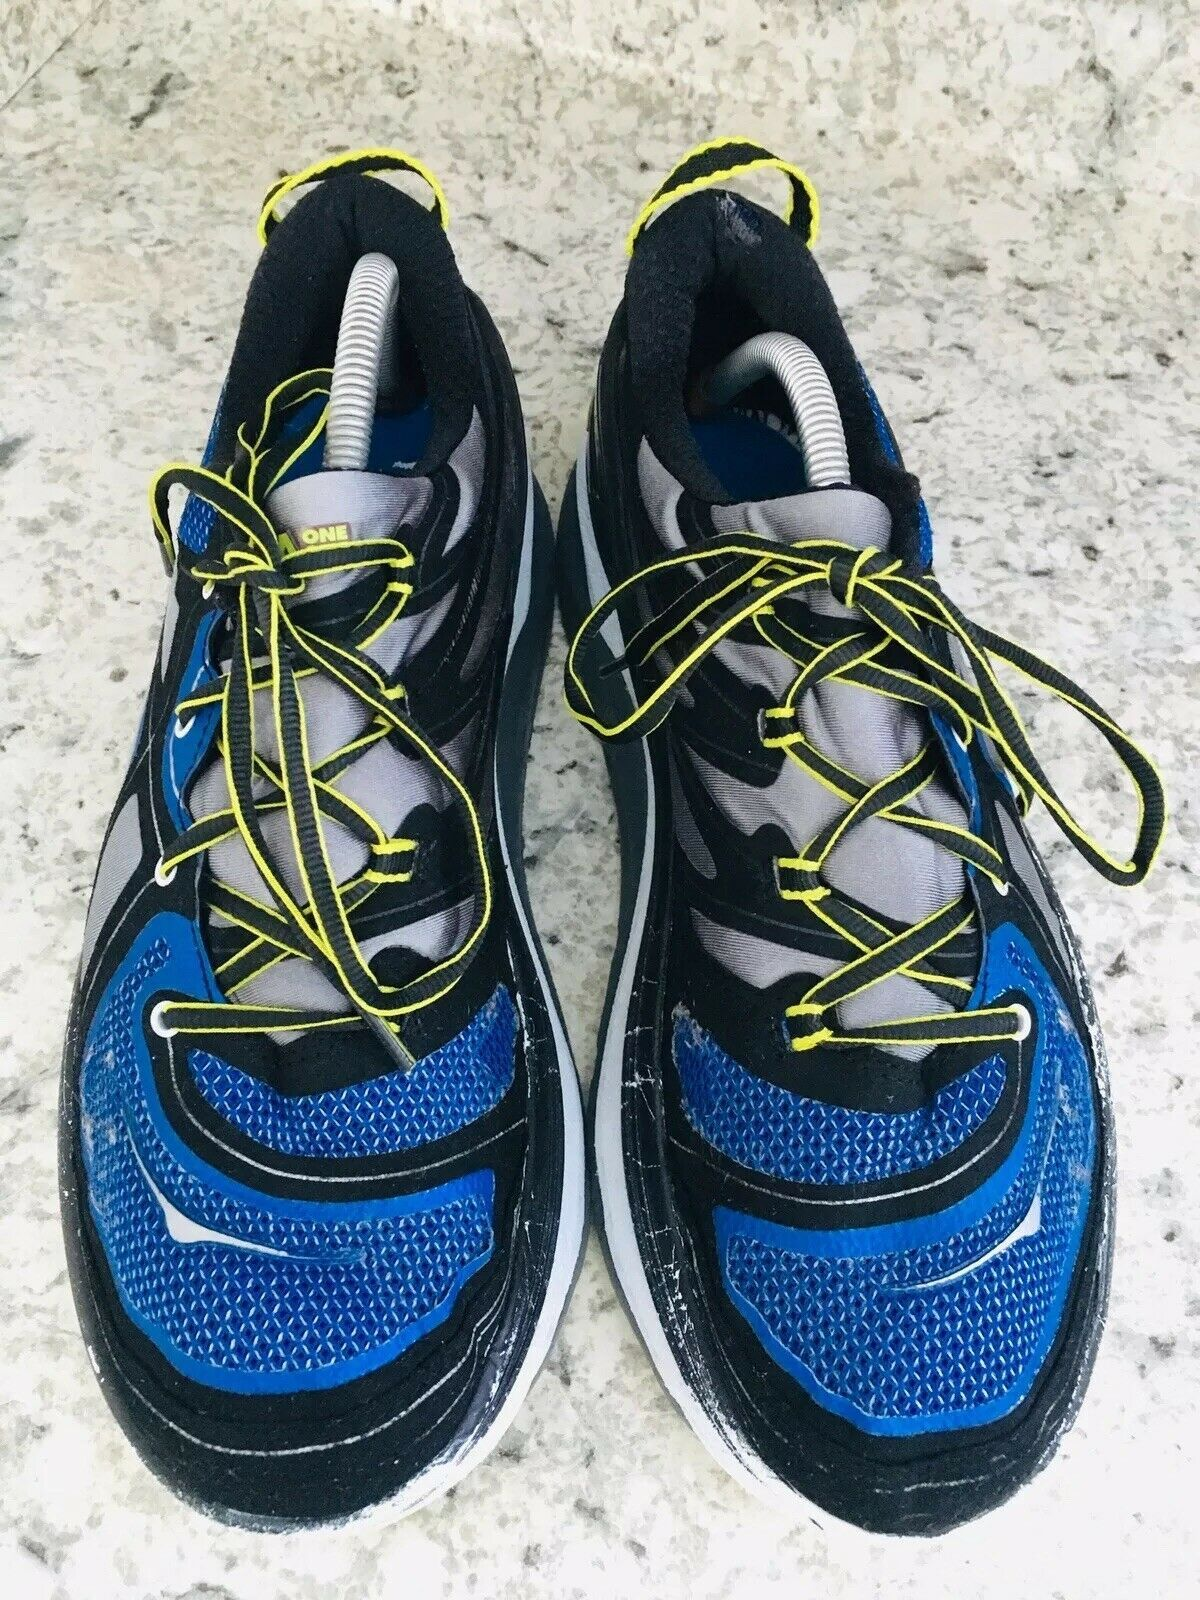 HOKA One One Constant Blue Yellow & Black running Shoes Men's SIZE 10